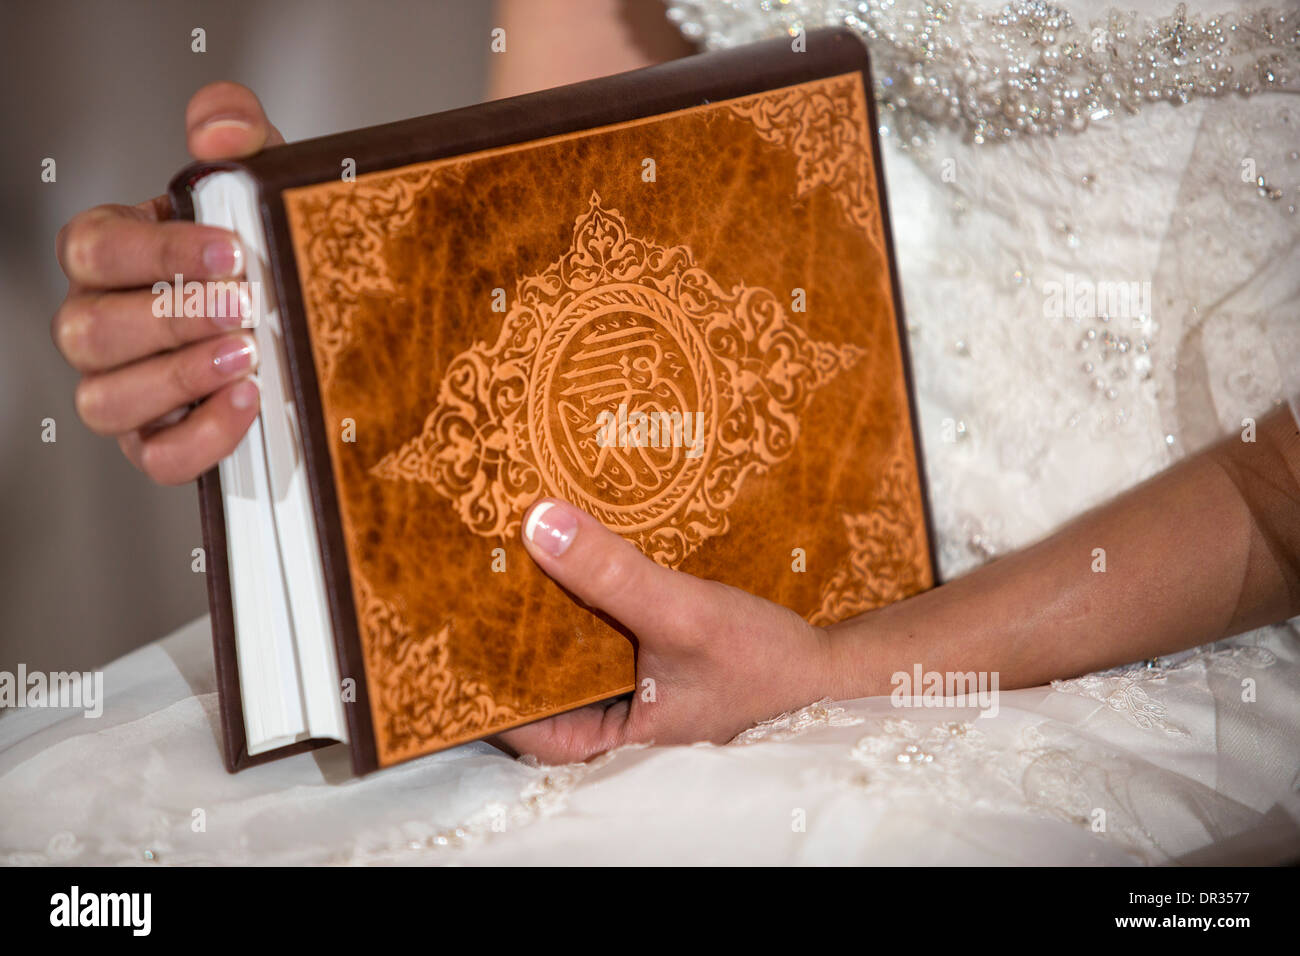 A bride holding a copy of the Koran during an Iranian wedding ceremony. - Stock Image